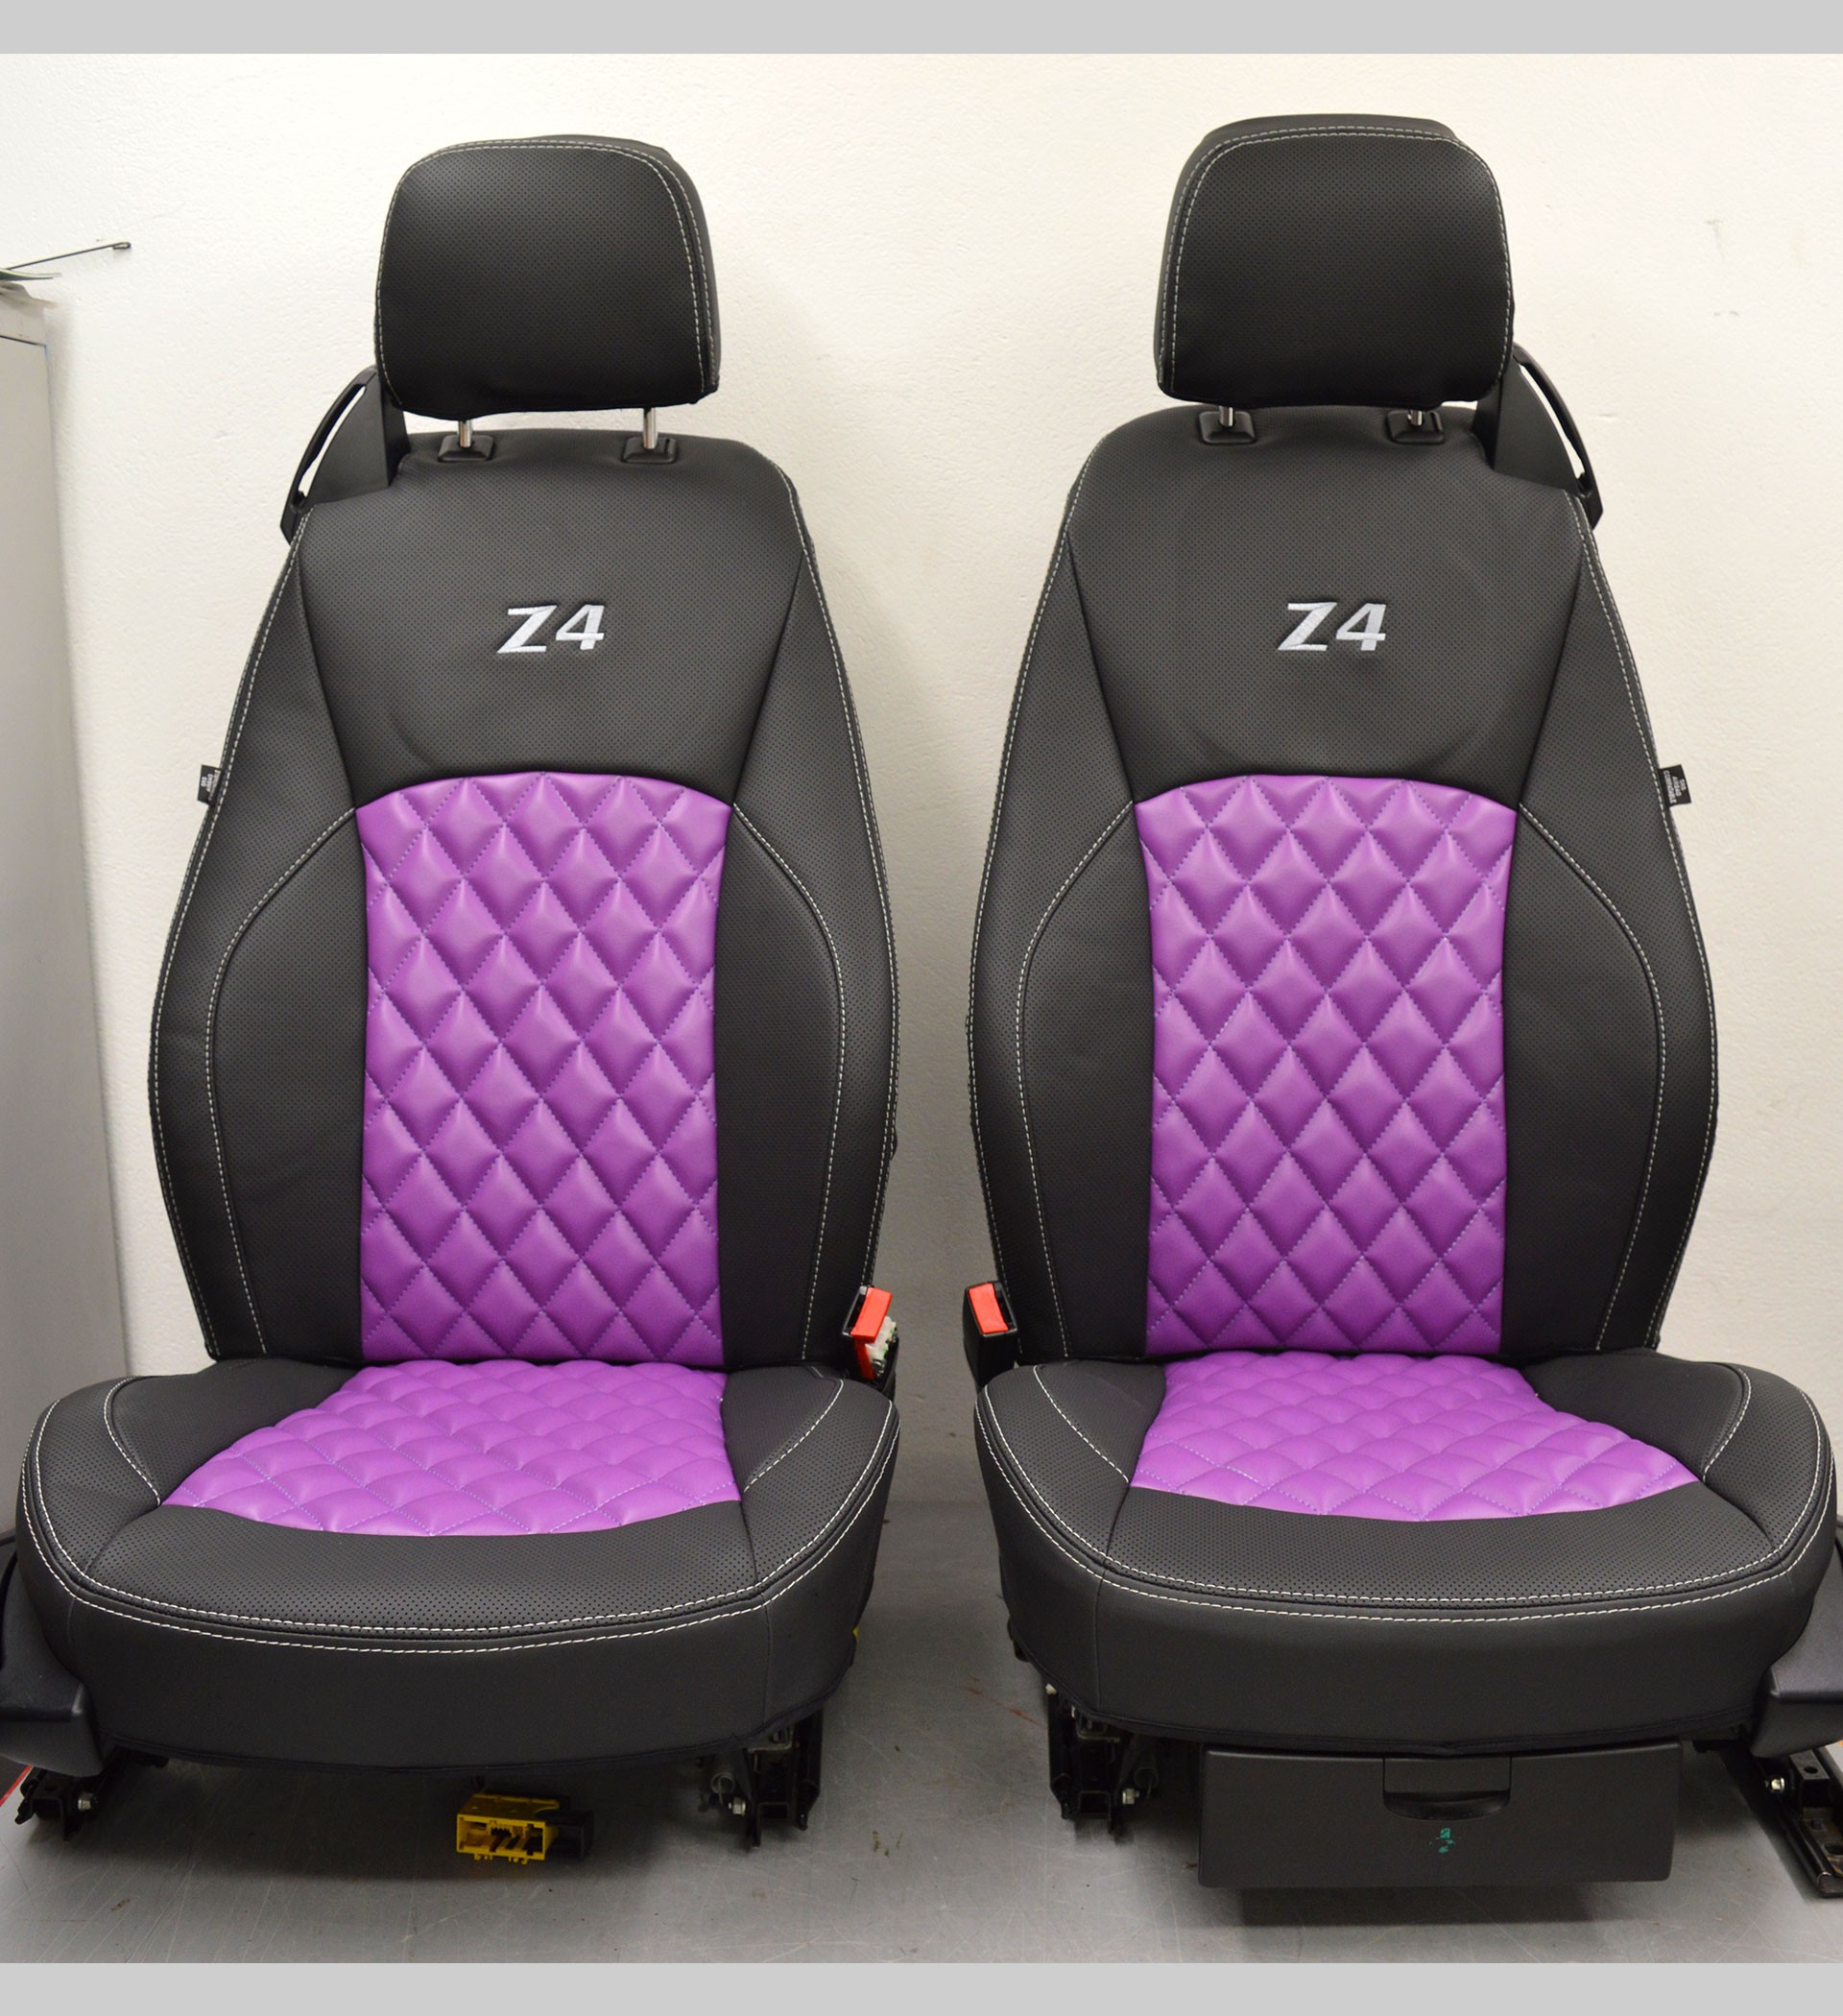 Bmw Z4 Seat Covers: BMW Z4 E85 Tailored Waterproof Leather Look Seat Covers